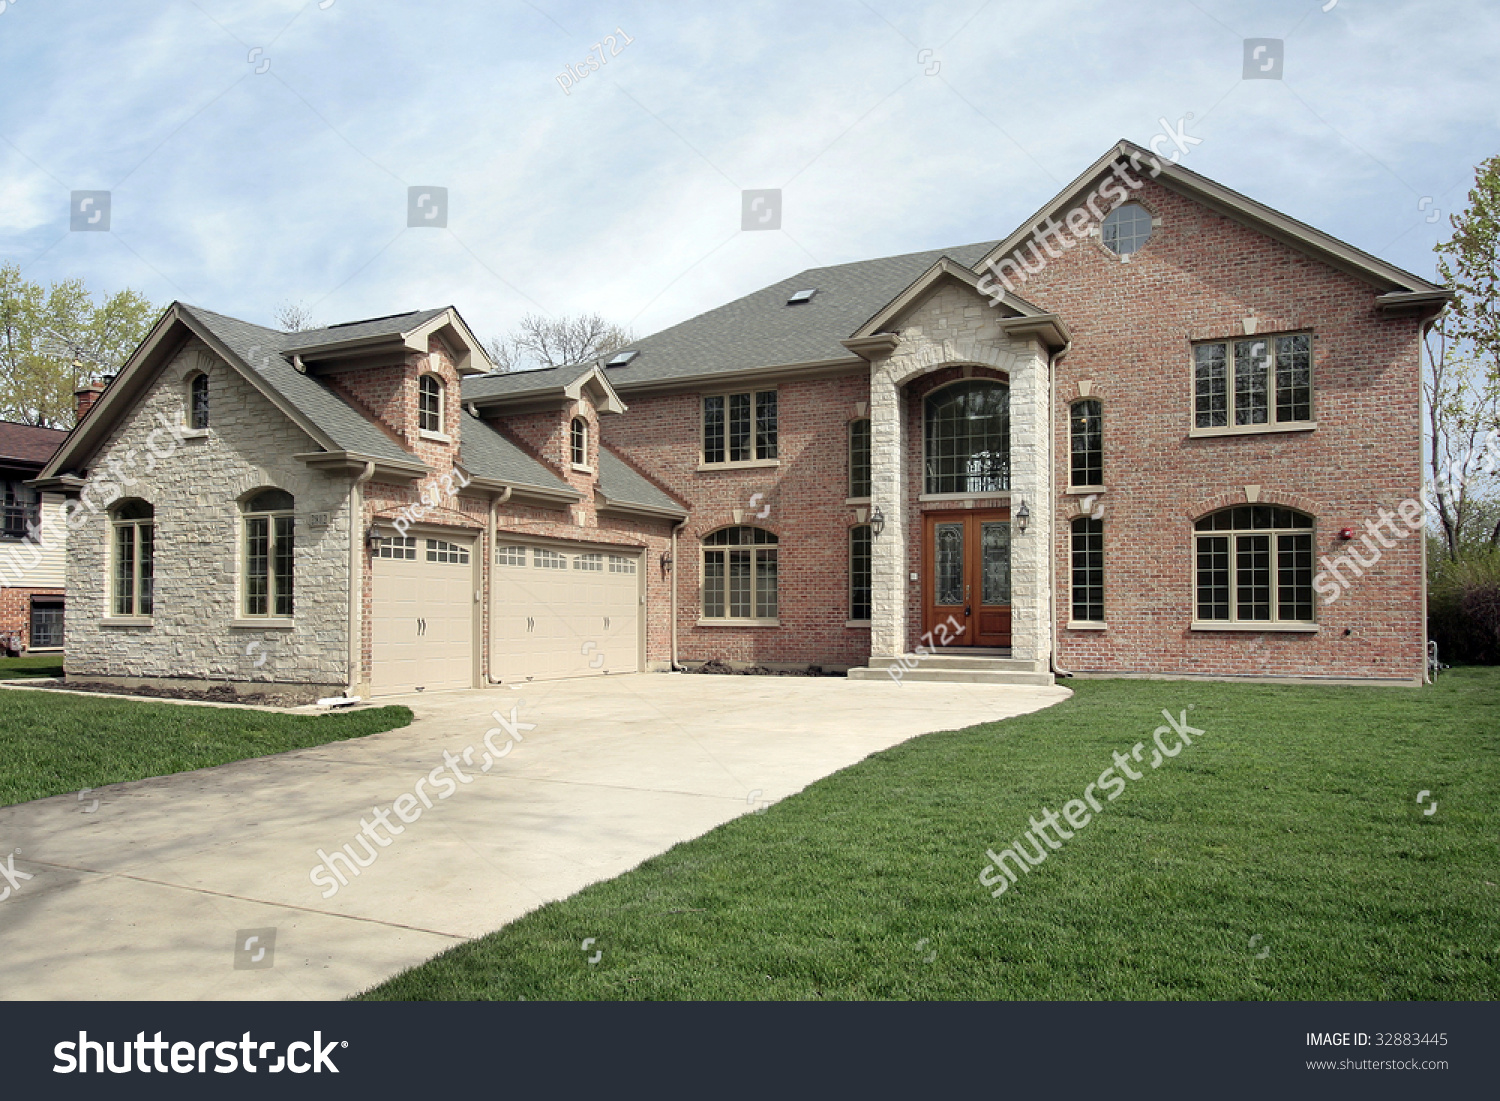 New Construction Brick Home With Stone Entryway Stock